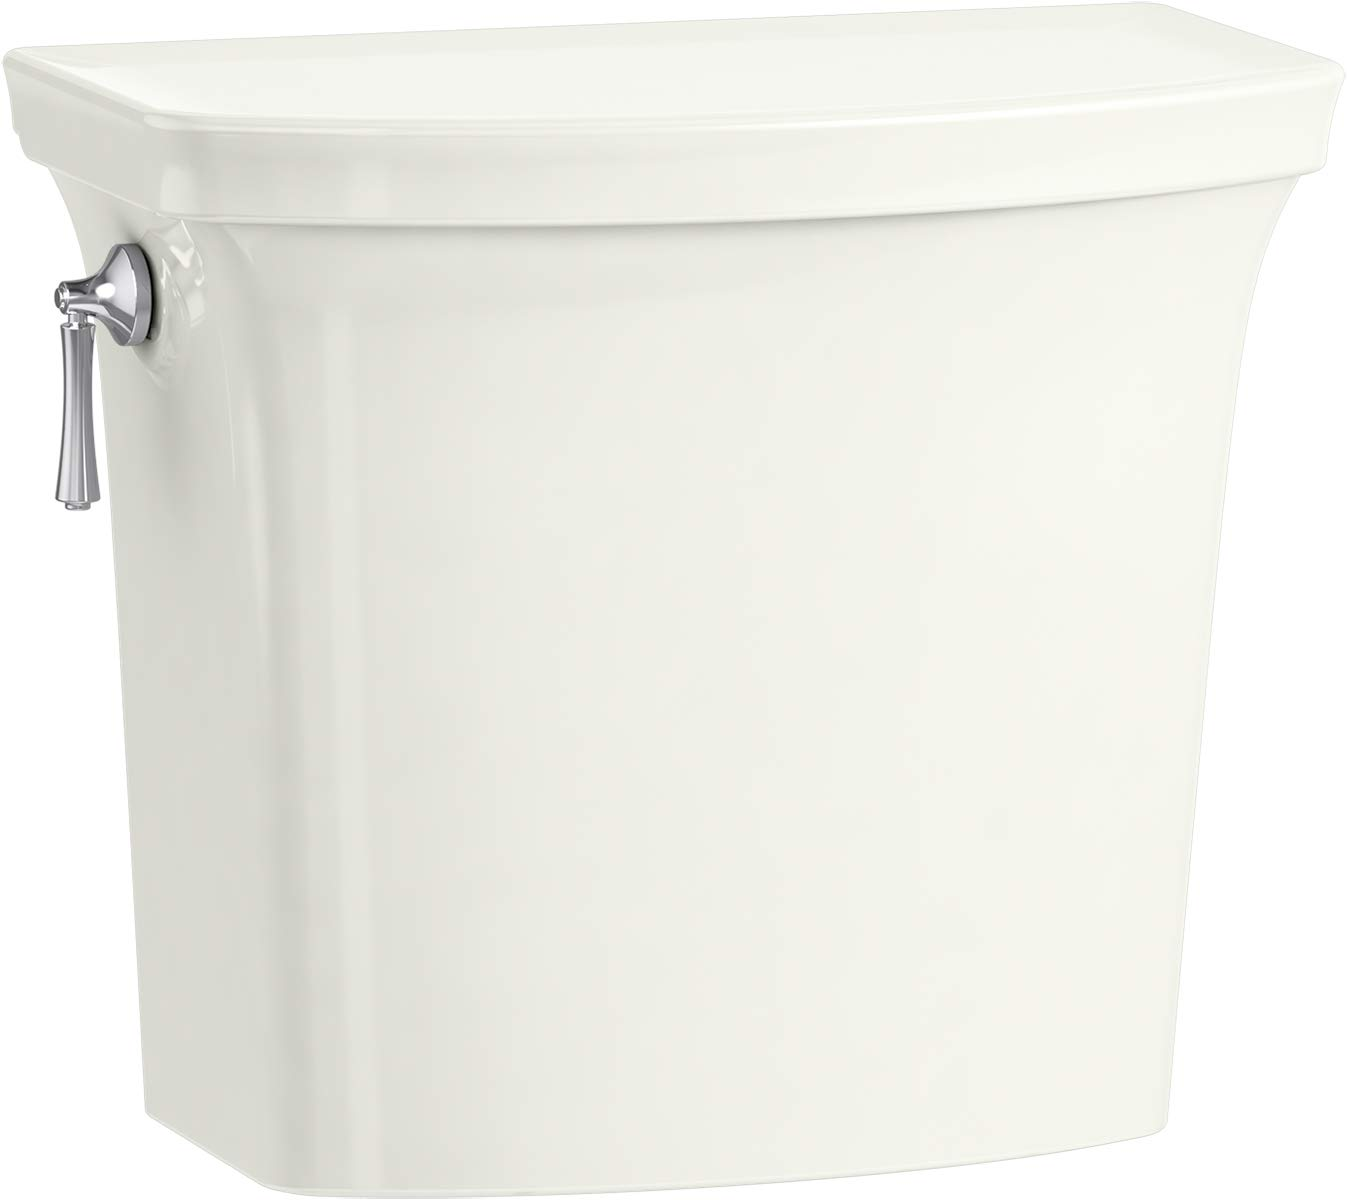 Kohler K-5711-NY Corbelle with ContinuousClean 1.28 gpf AquaPiston Flush Technology and Left-Hand Trip Lever toilet tank Dune